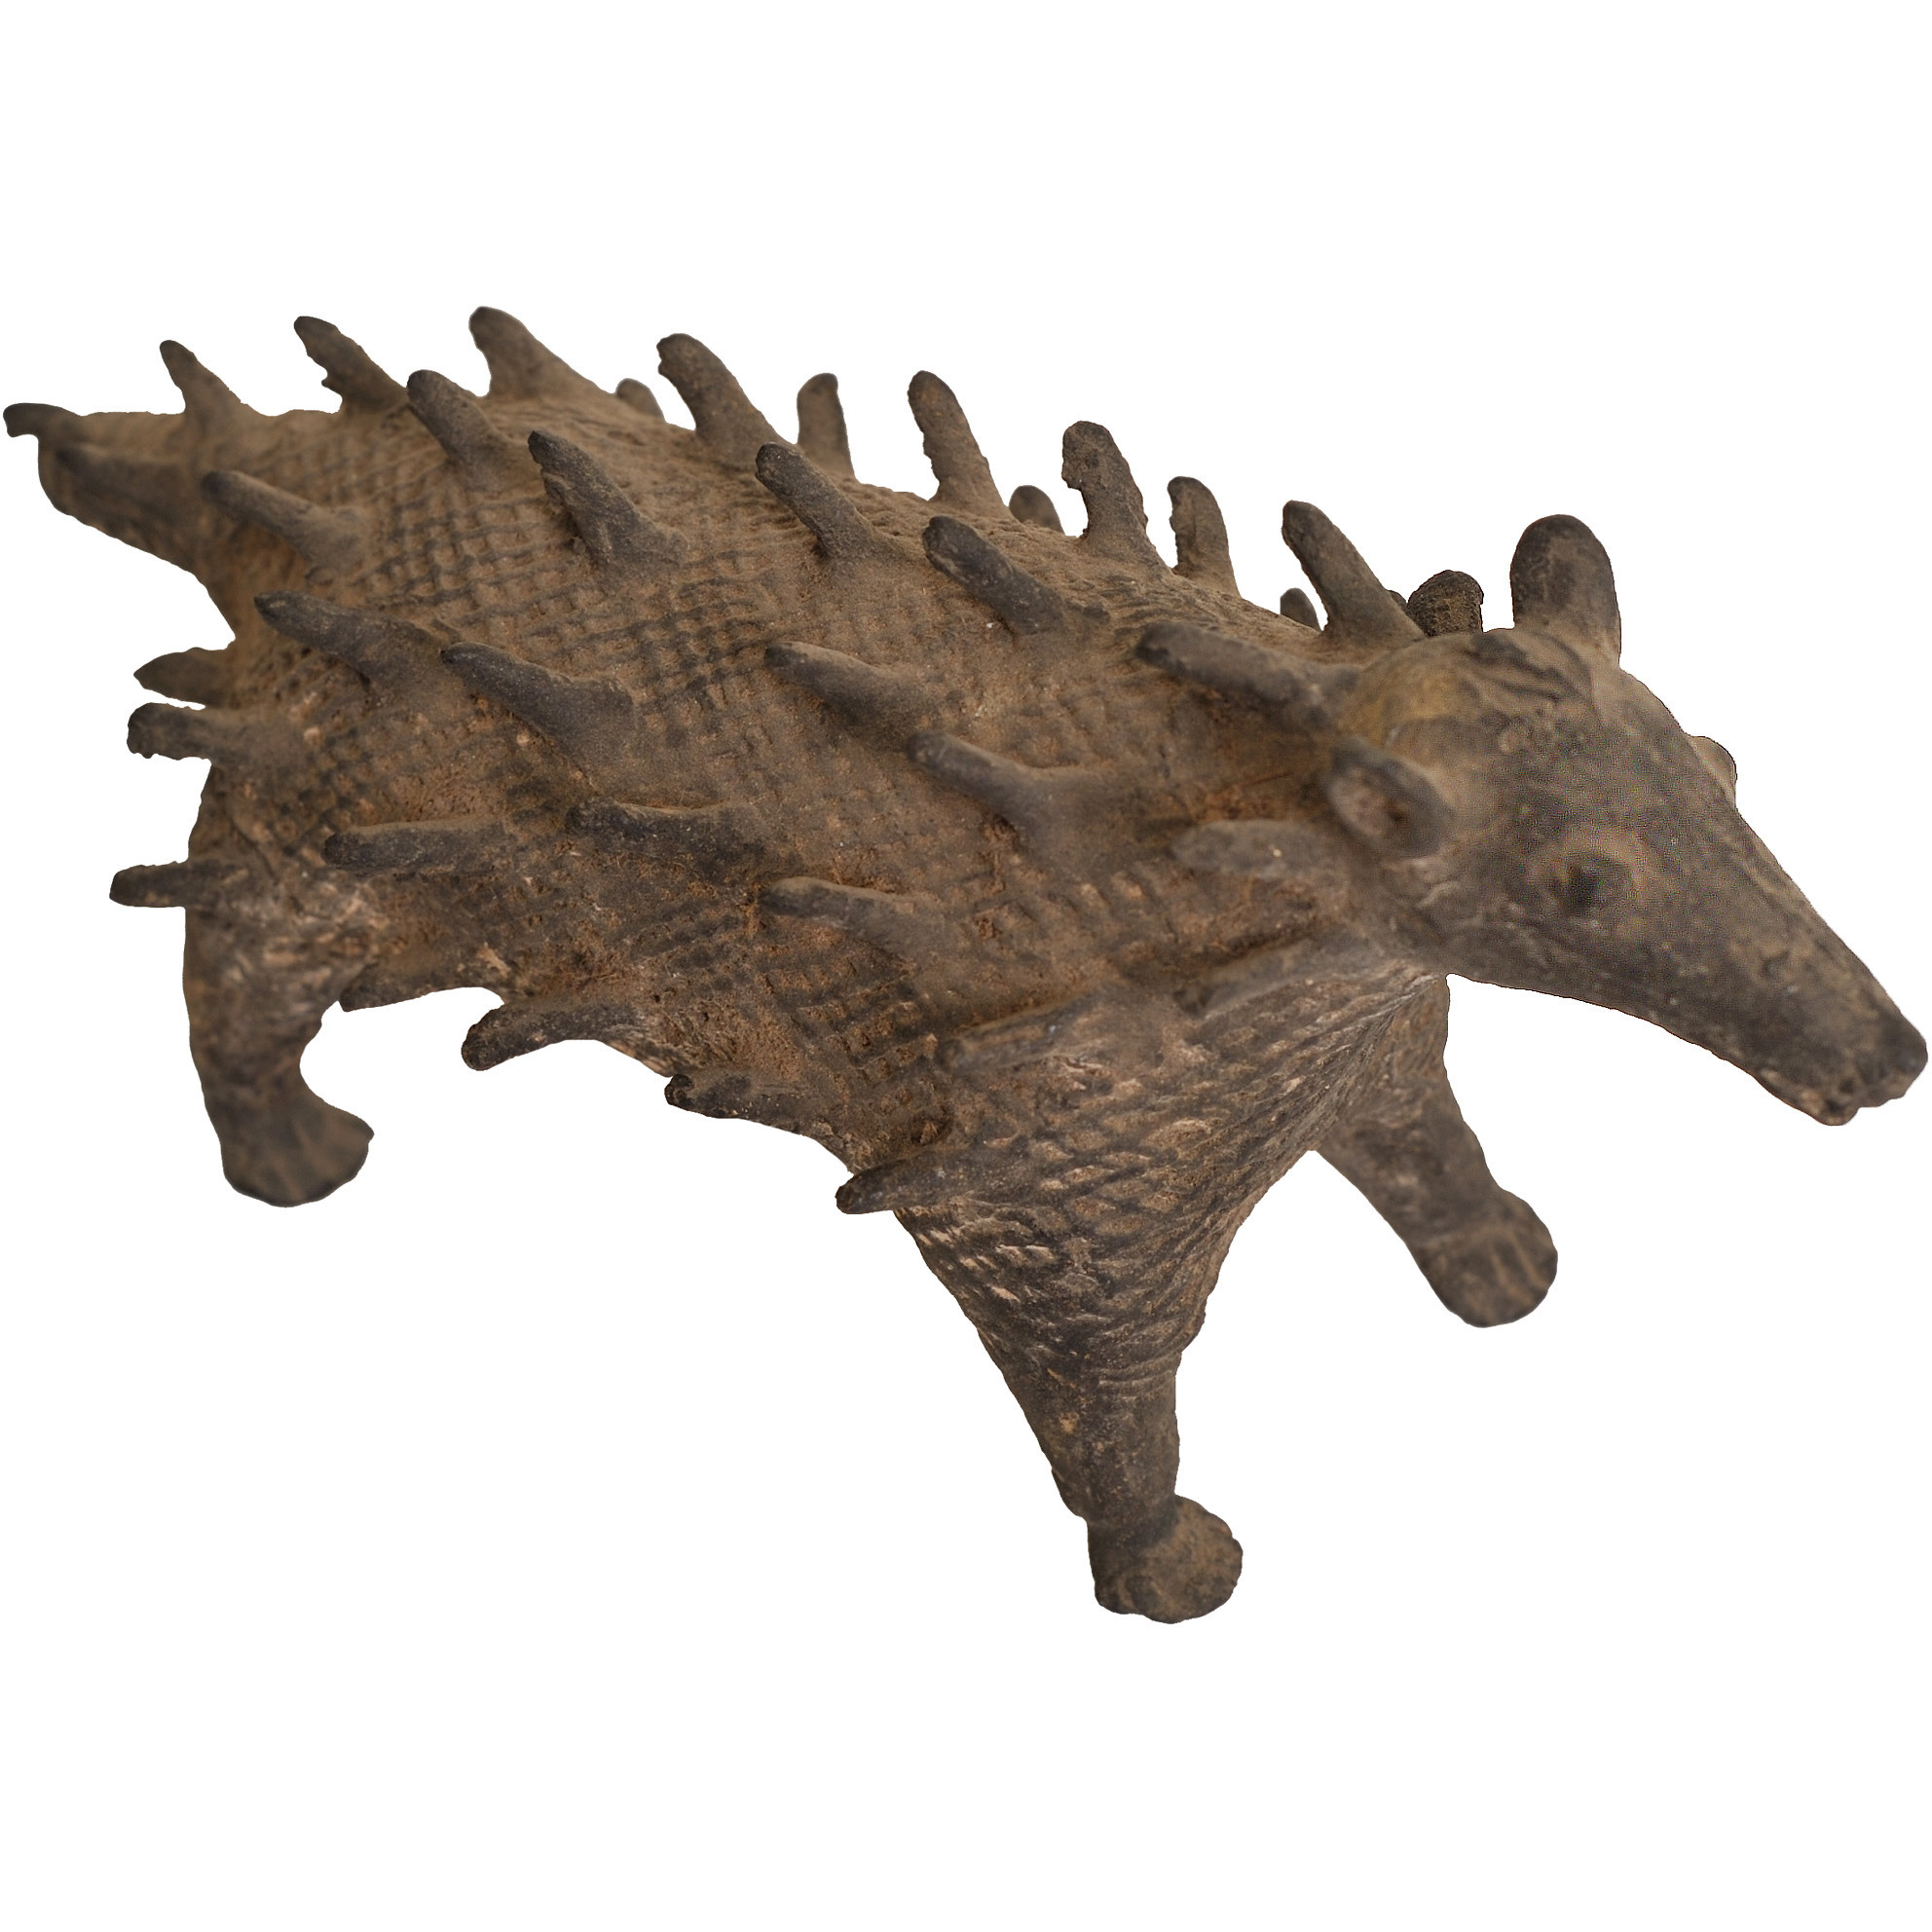 Porcupine: Tribal Art From Bastar